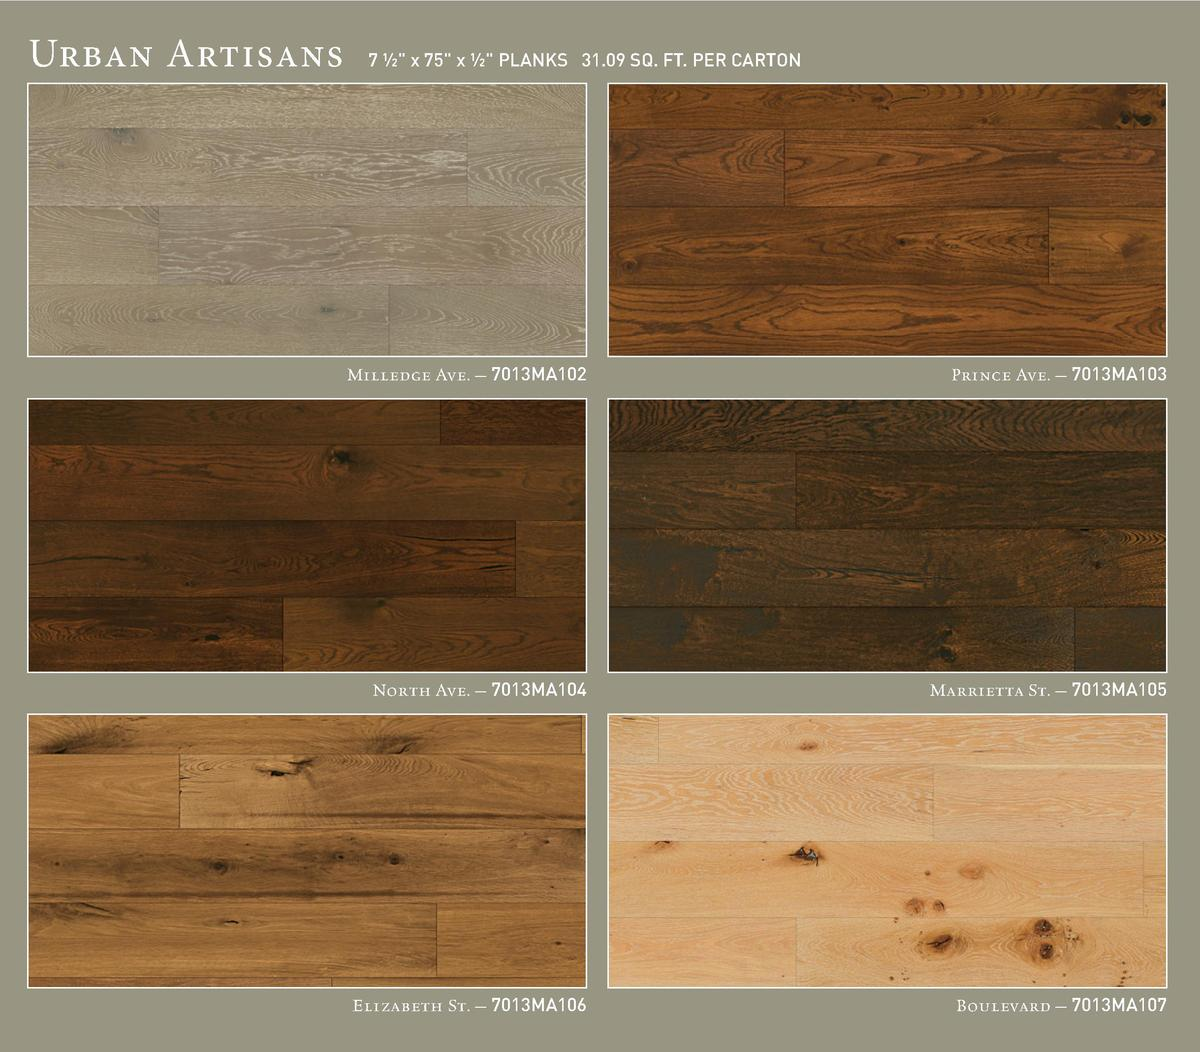 Urban Artisans  7     x 75  x     PLANKS 31.09 SQ. FT. PER CARTON  Milledge Ave.     7013MA102  Prince Ave.     7013MA103 ...